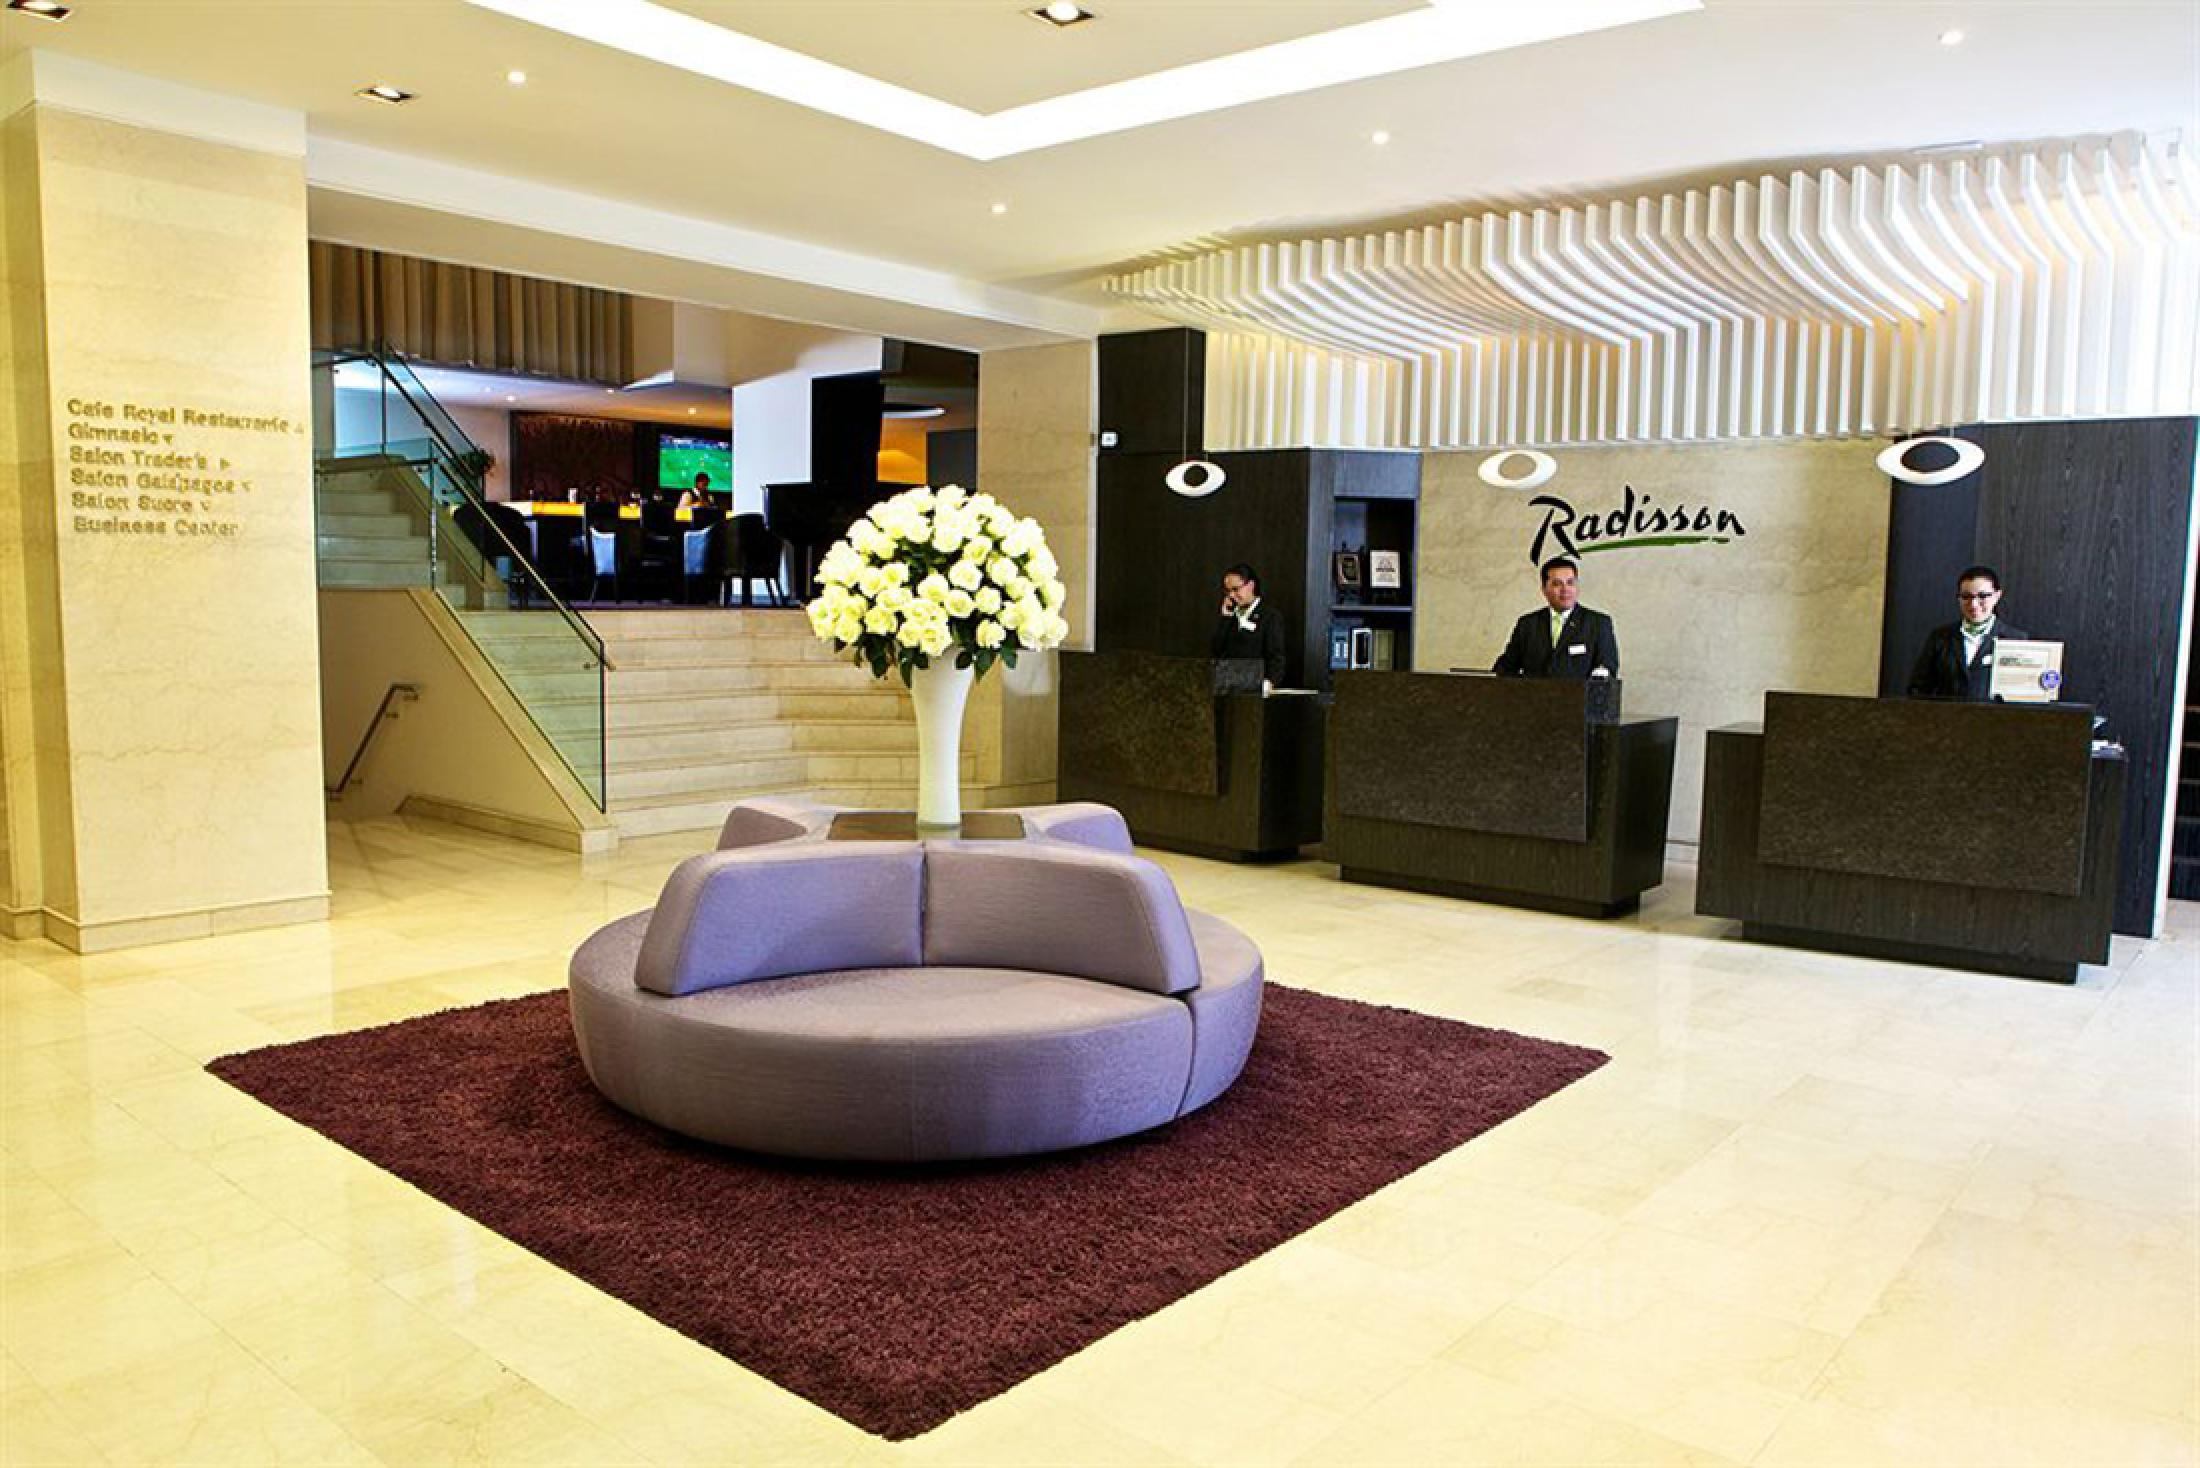 Radisson Royal Quito Hotel